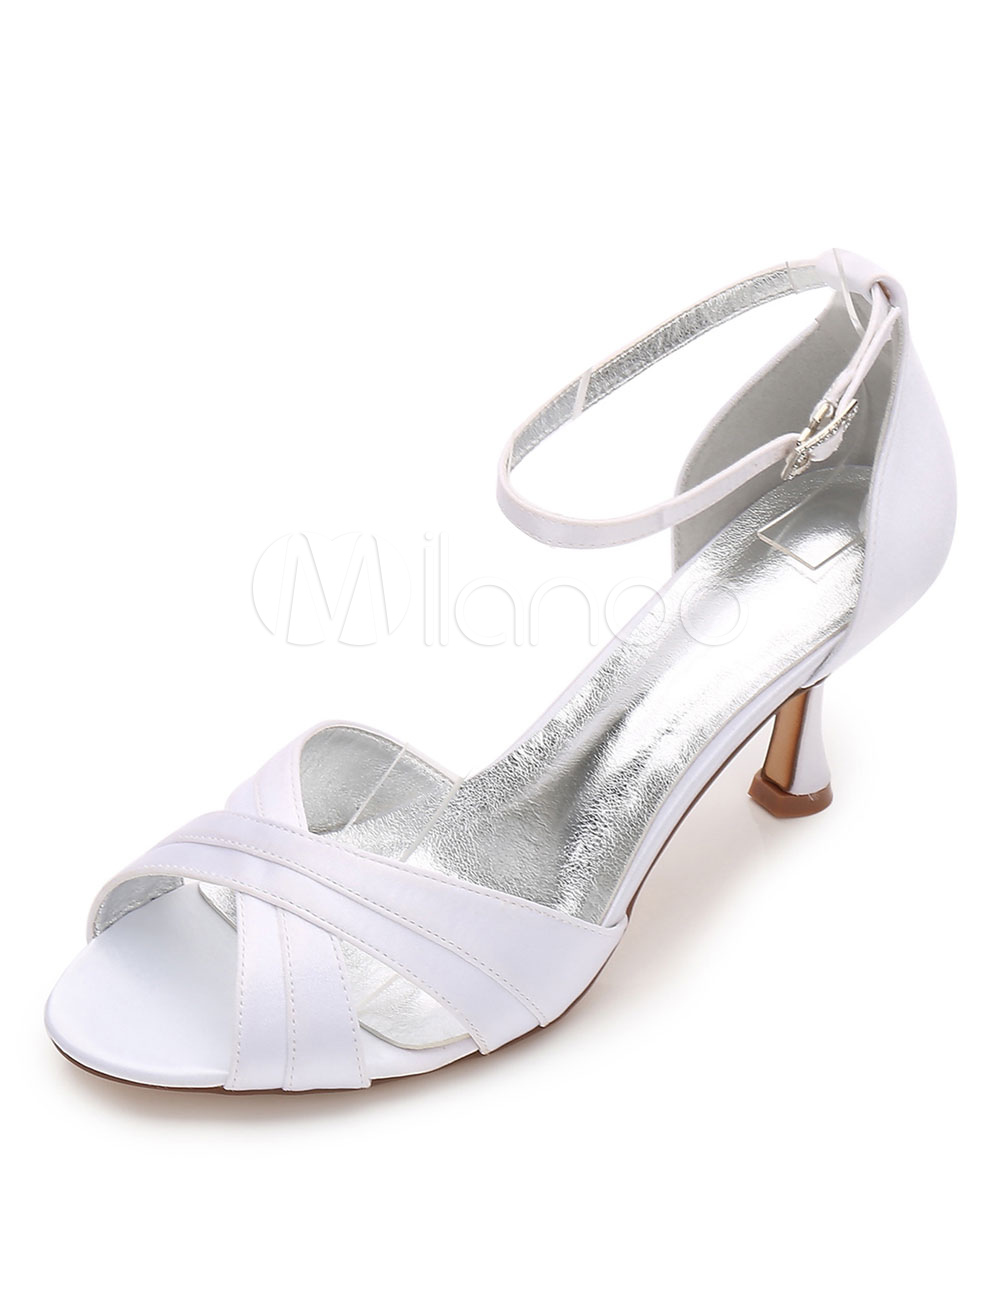 White Wedding Shoes Open Toe Criss Cross Ankle Strap Bridal Sandals For Women